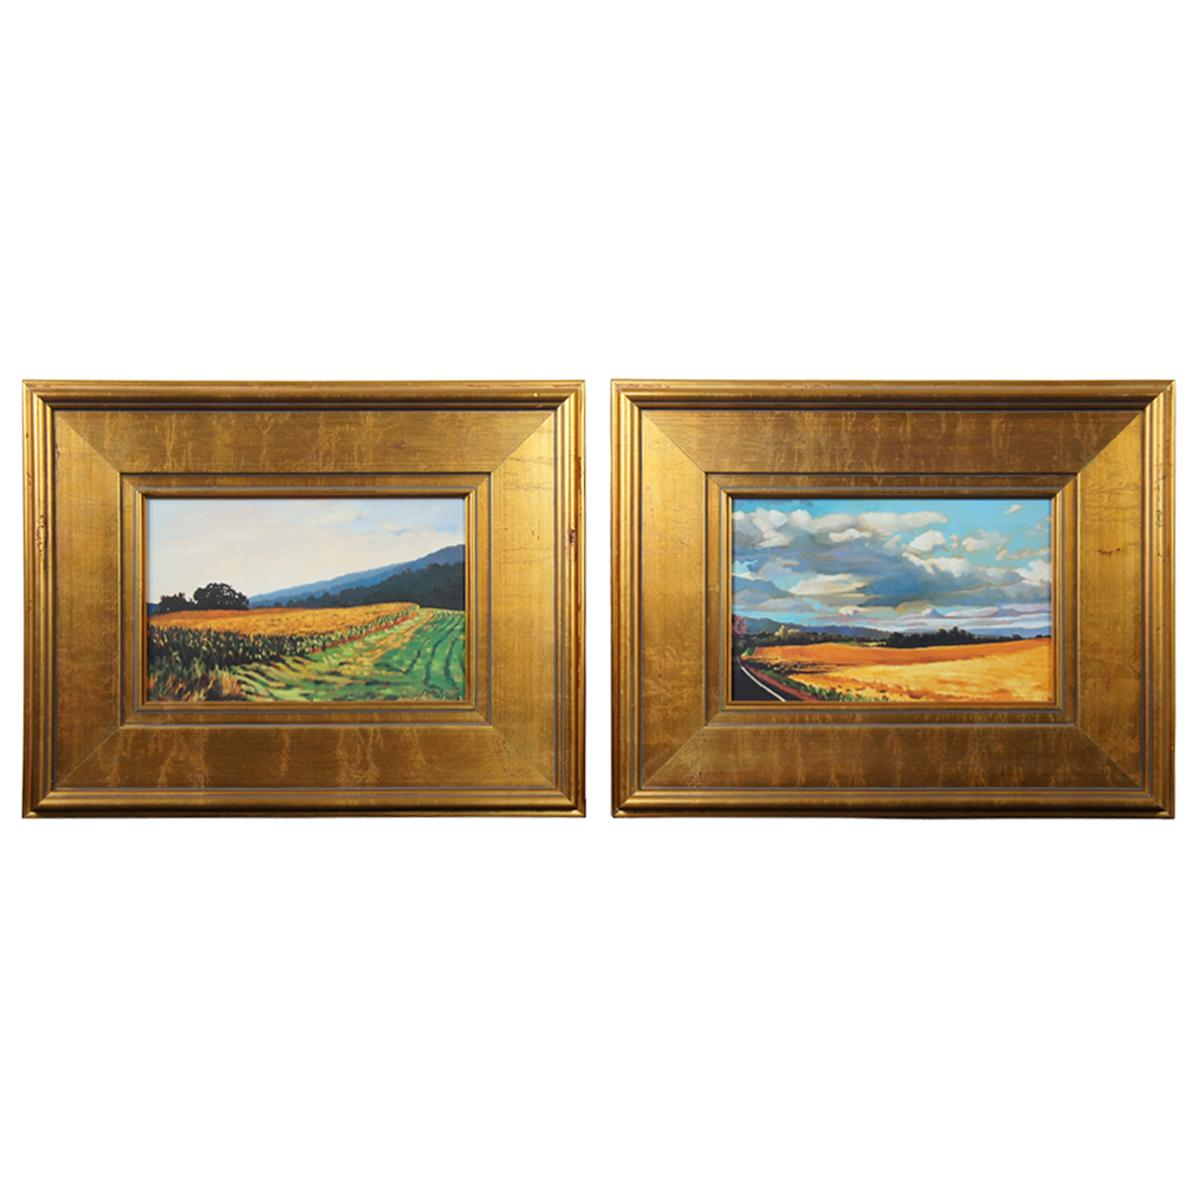 2 Virginia Landscape Field of Wheat Oil Paintings on Canvas Signed Gold Frame